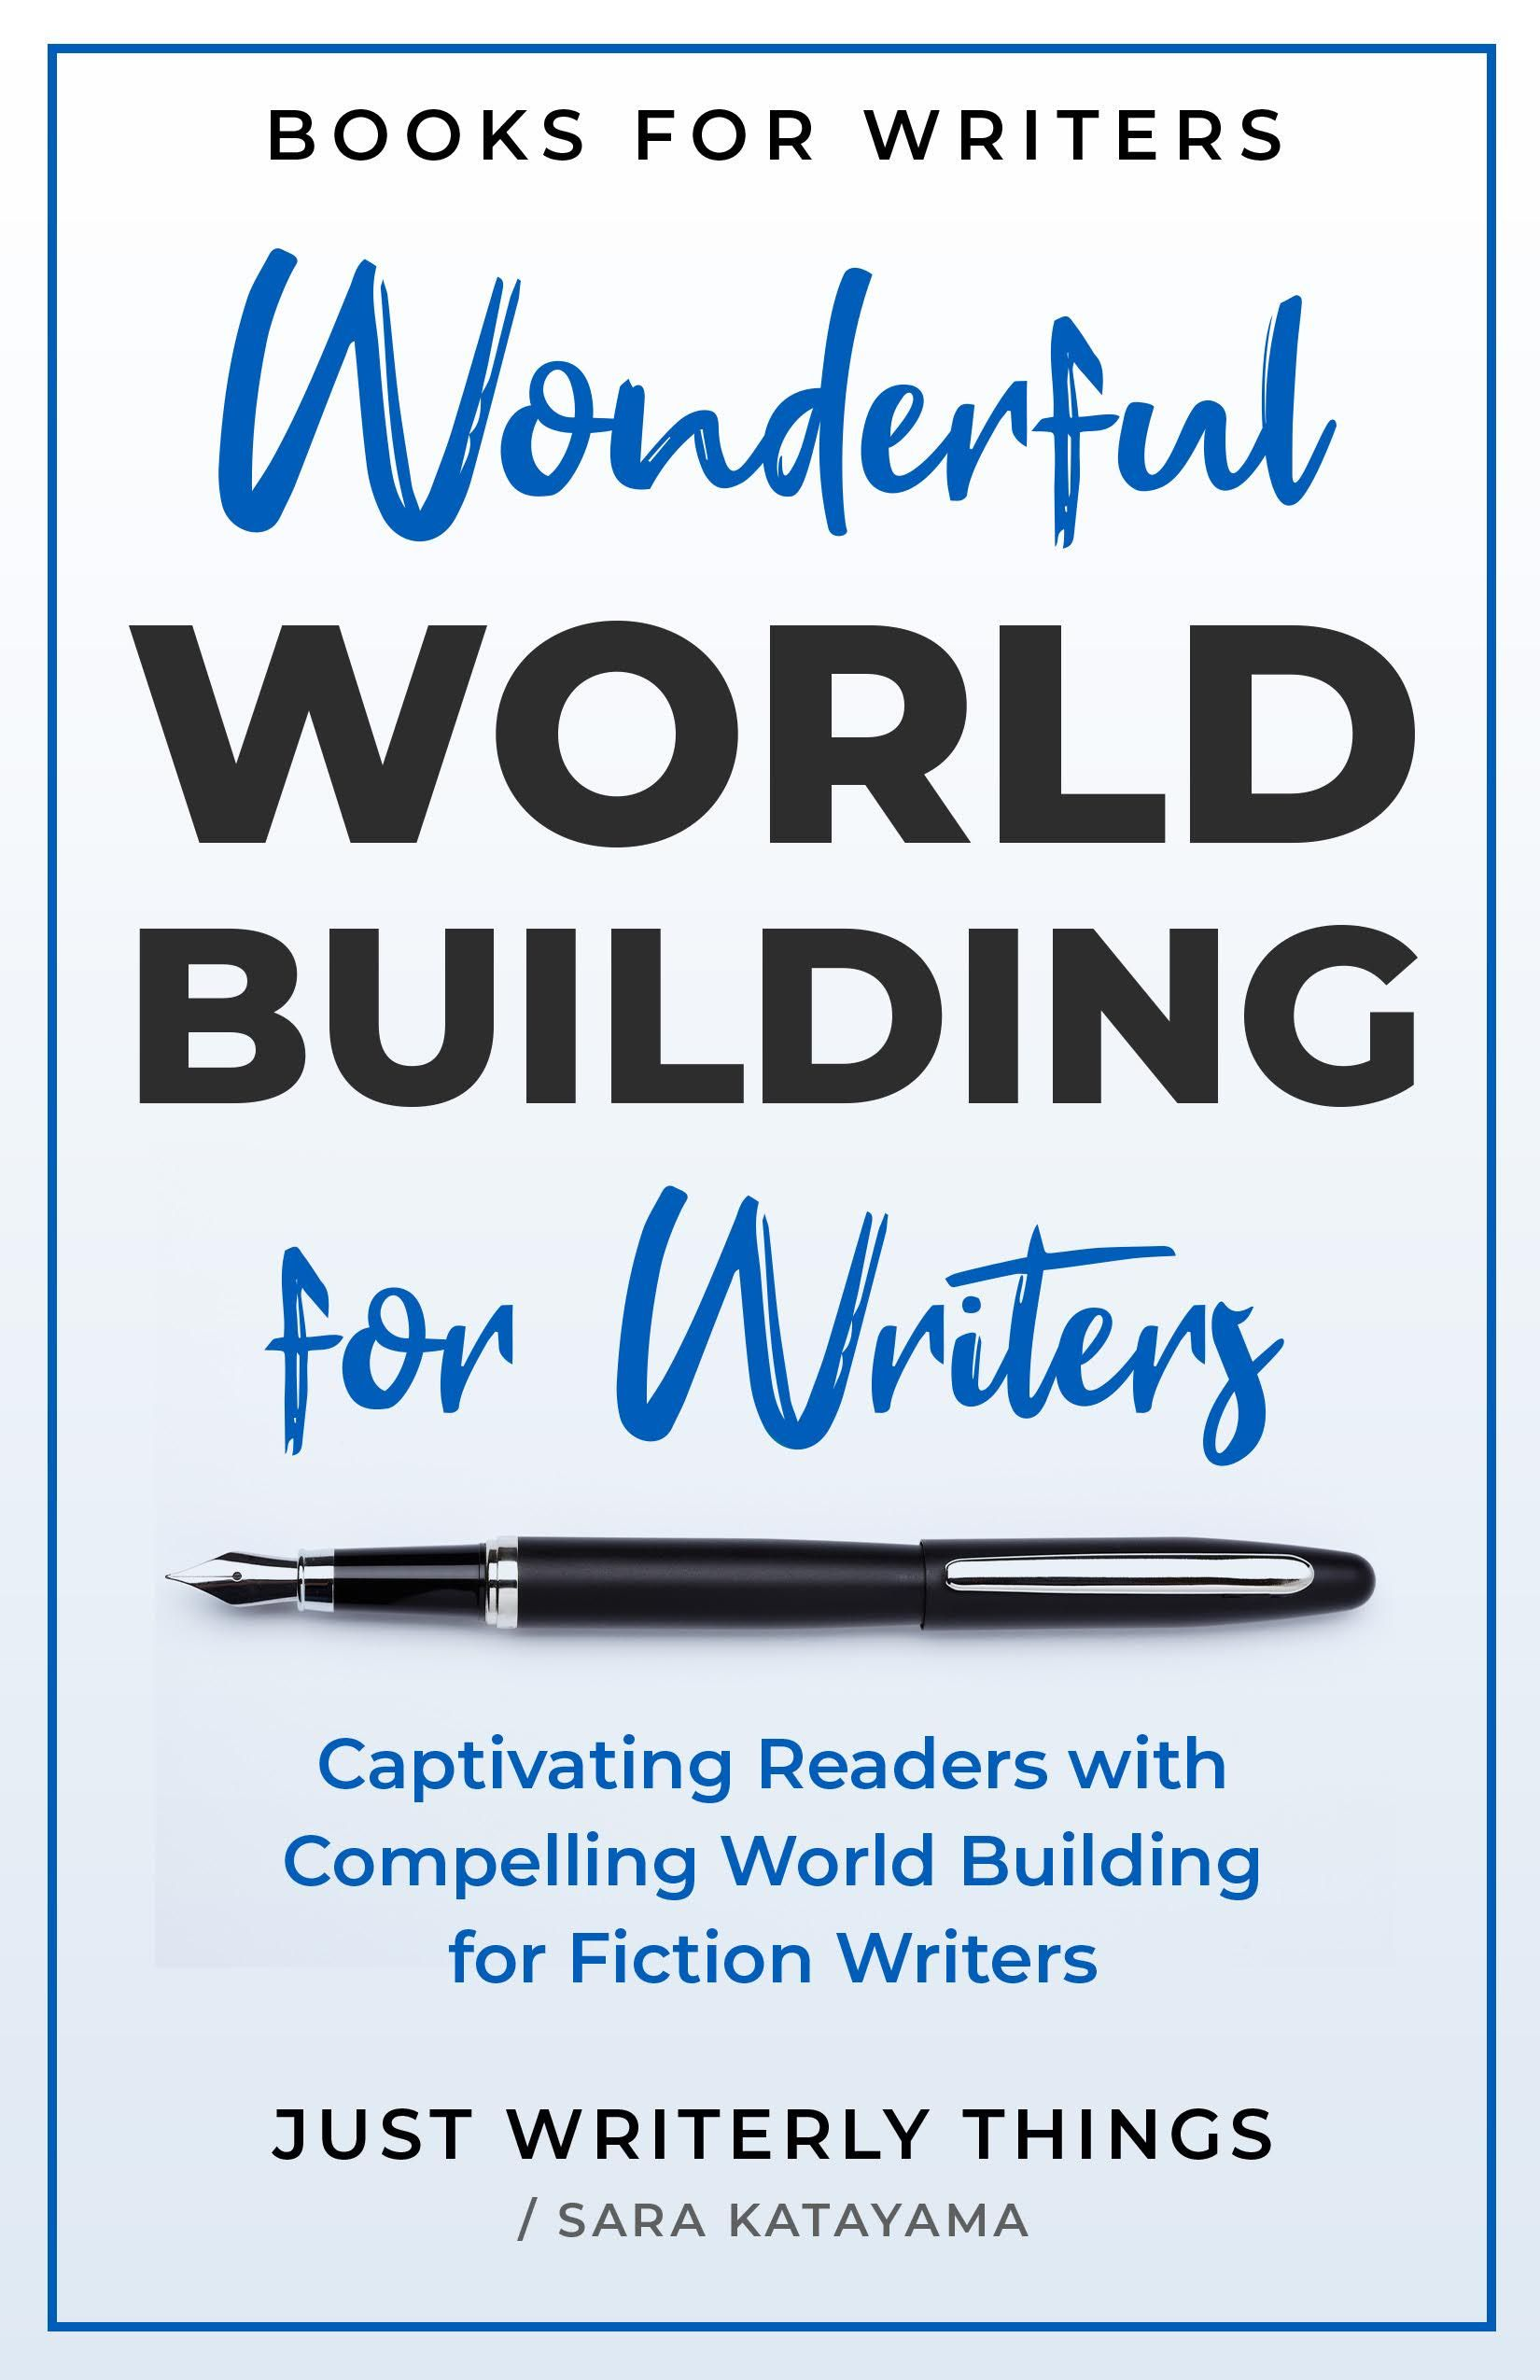 Wonderful World Building For Fiction Writers